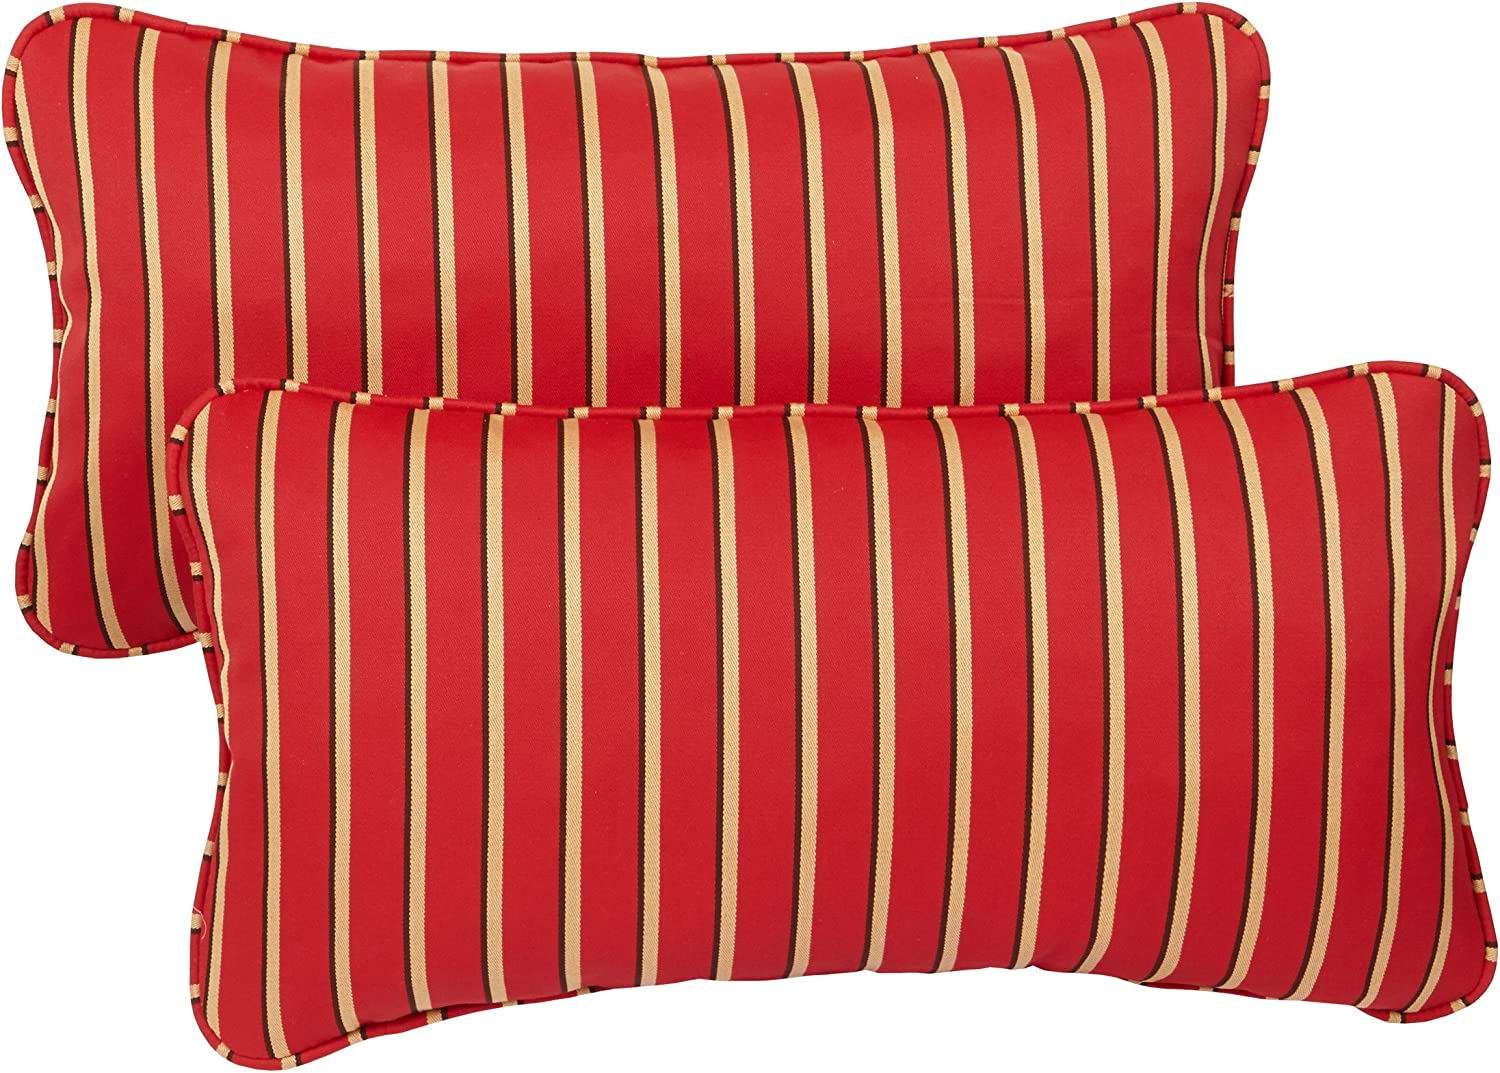 Mozaic AZPS2735 Indoor Outdoor Sunbrella Lumbar Pillows with Corded Edges, Set of 2 12 x 24 Red, Gold Black Stripes